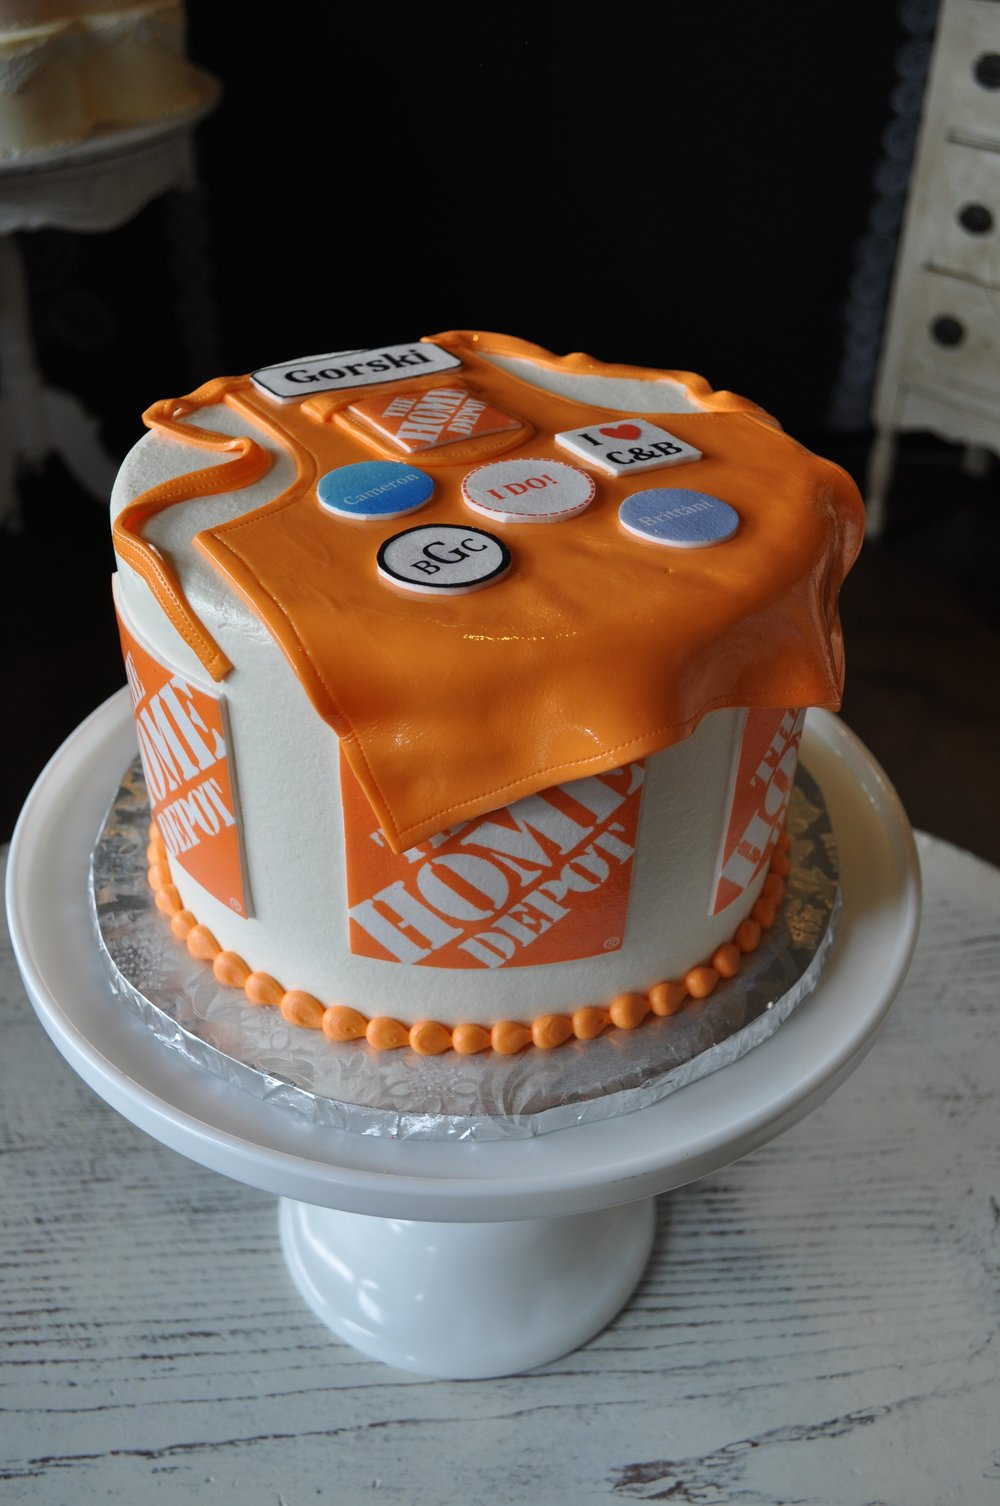 Home Depot Cake Closeup.jpg